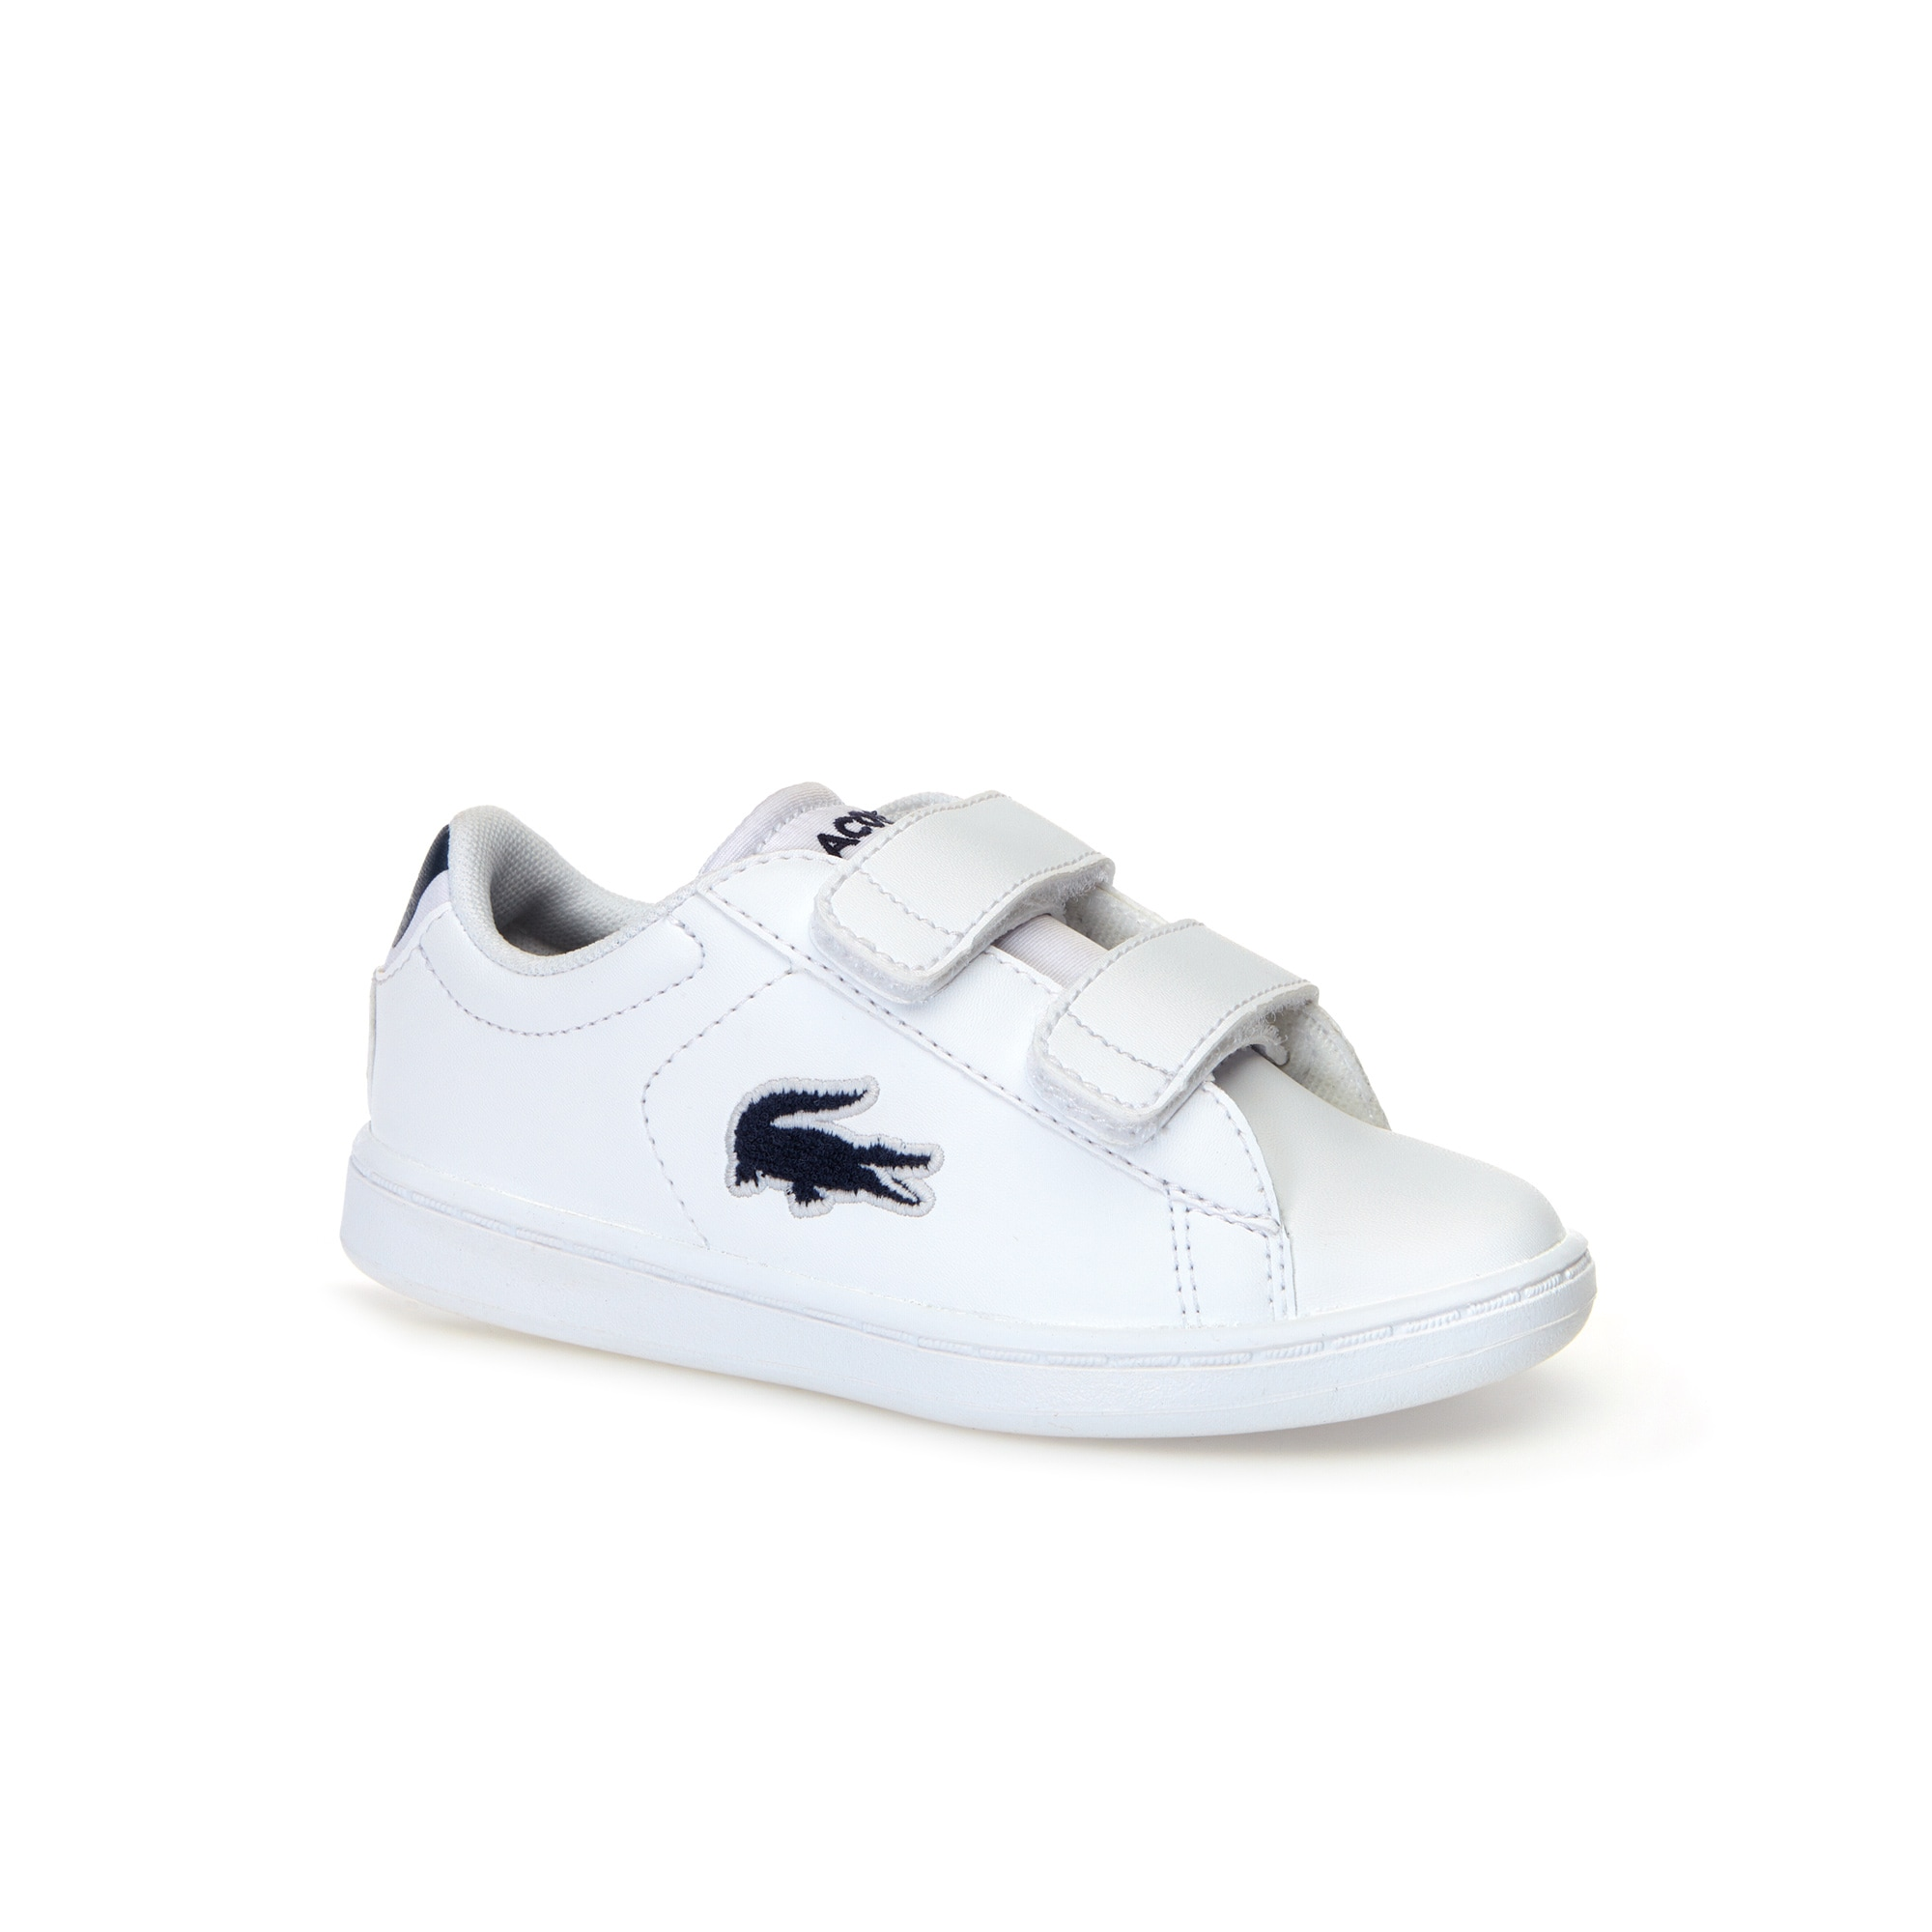 Baby-Sneakers CARANABY EVO WHITE aus Synthetik und Textil